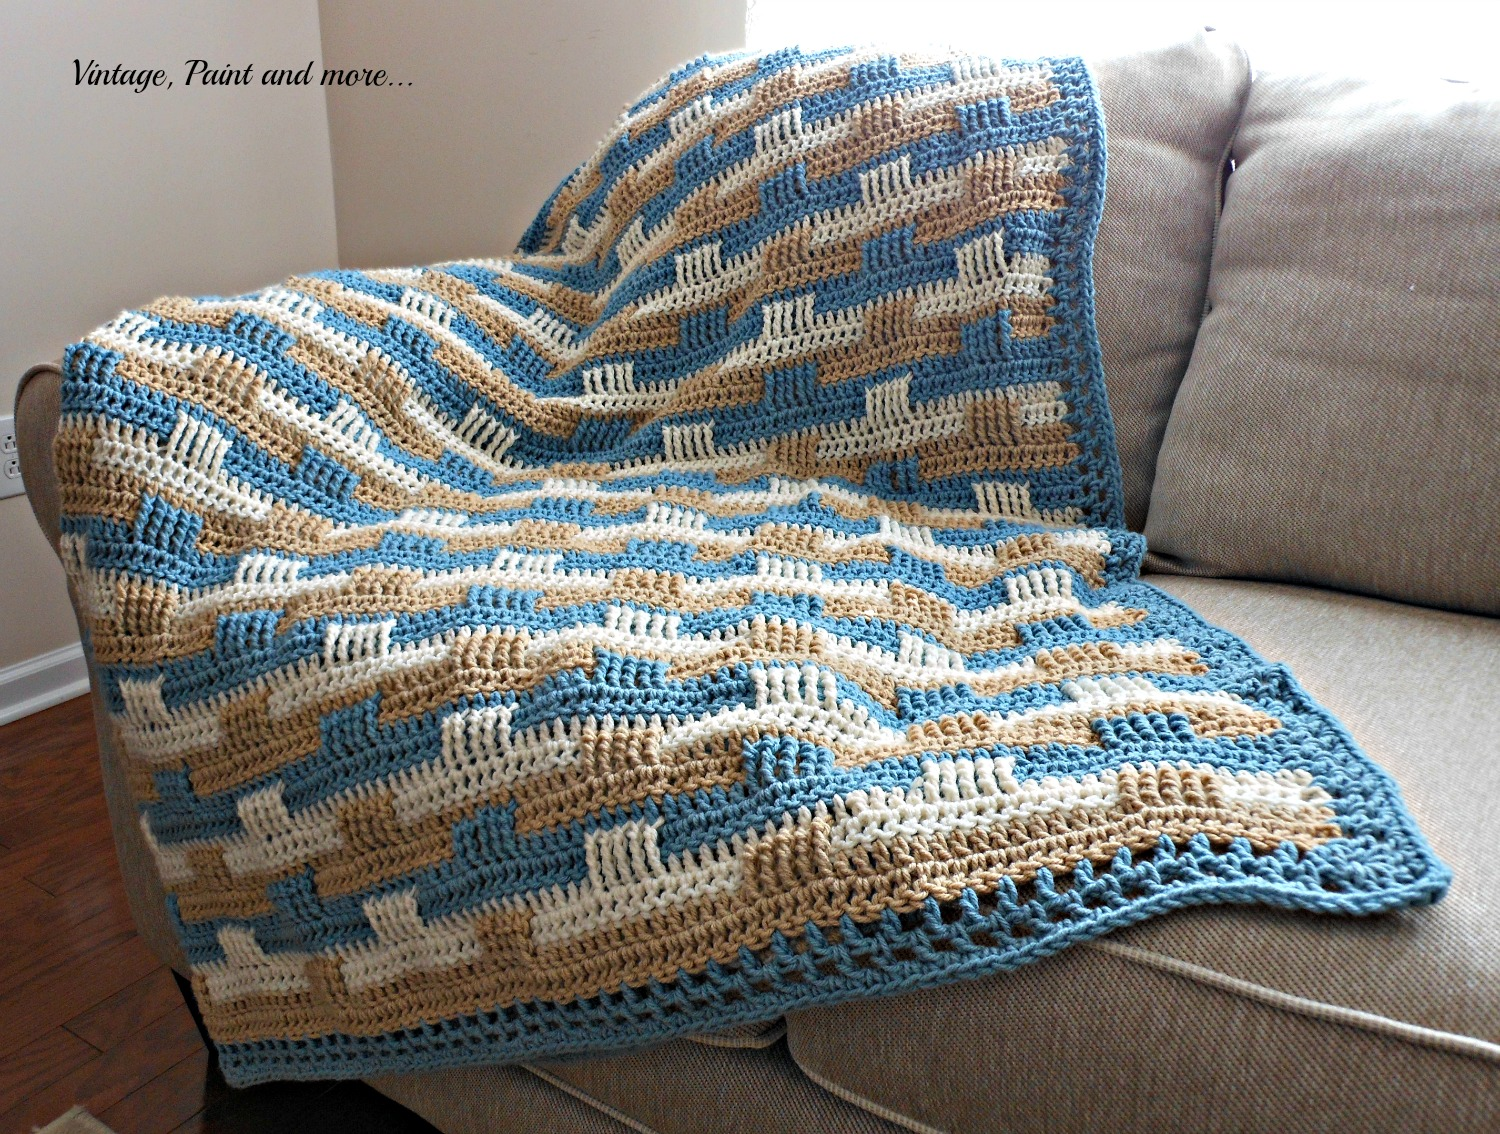 Basket Weave Afghan Crochet Pattern : Crochet Afghan and Stenciled Pillow Vintage, Paint and ...